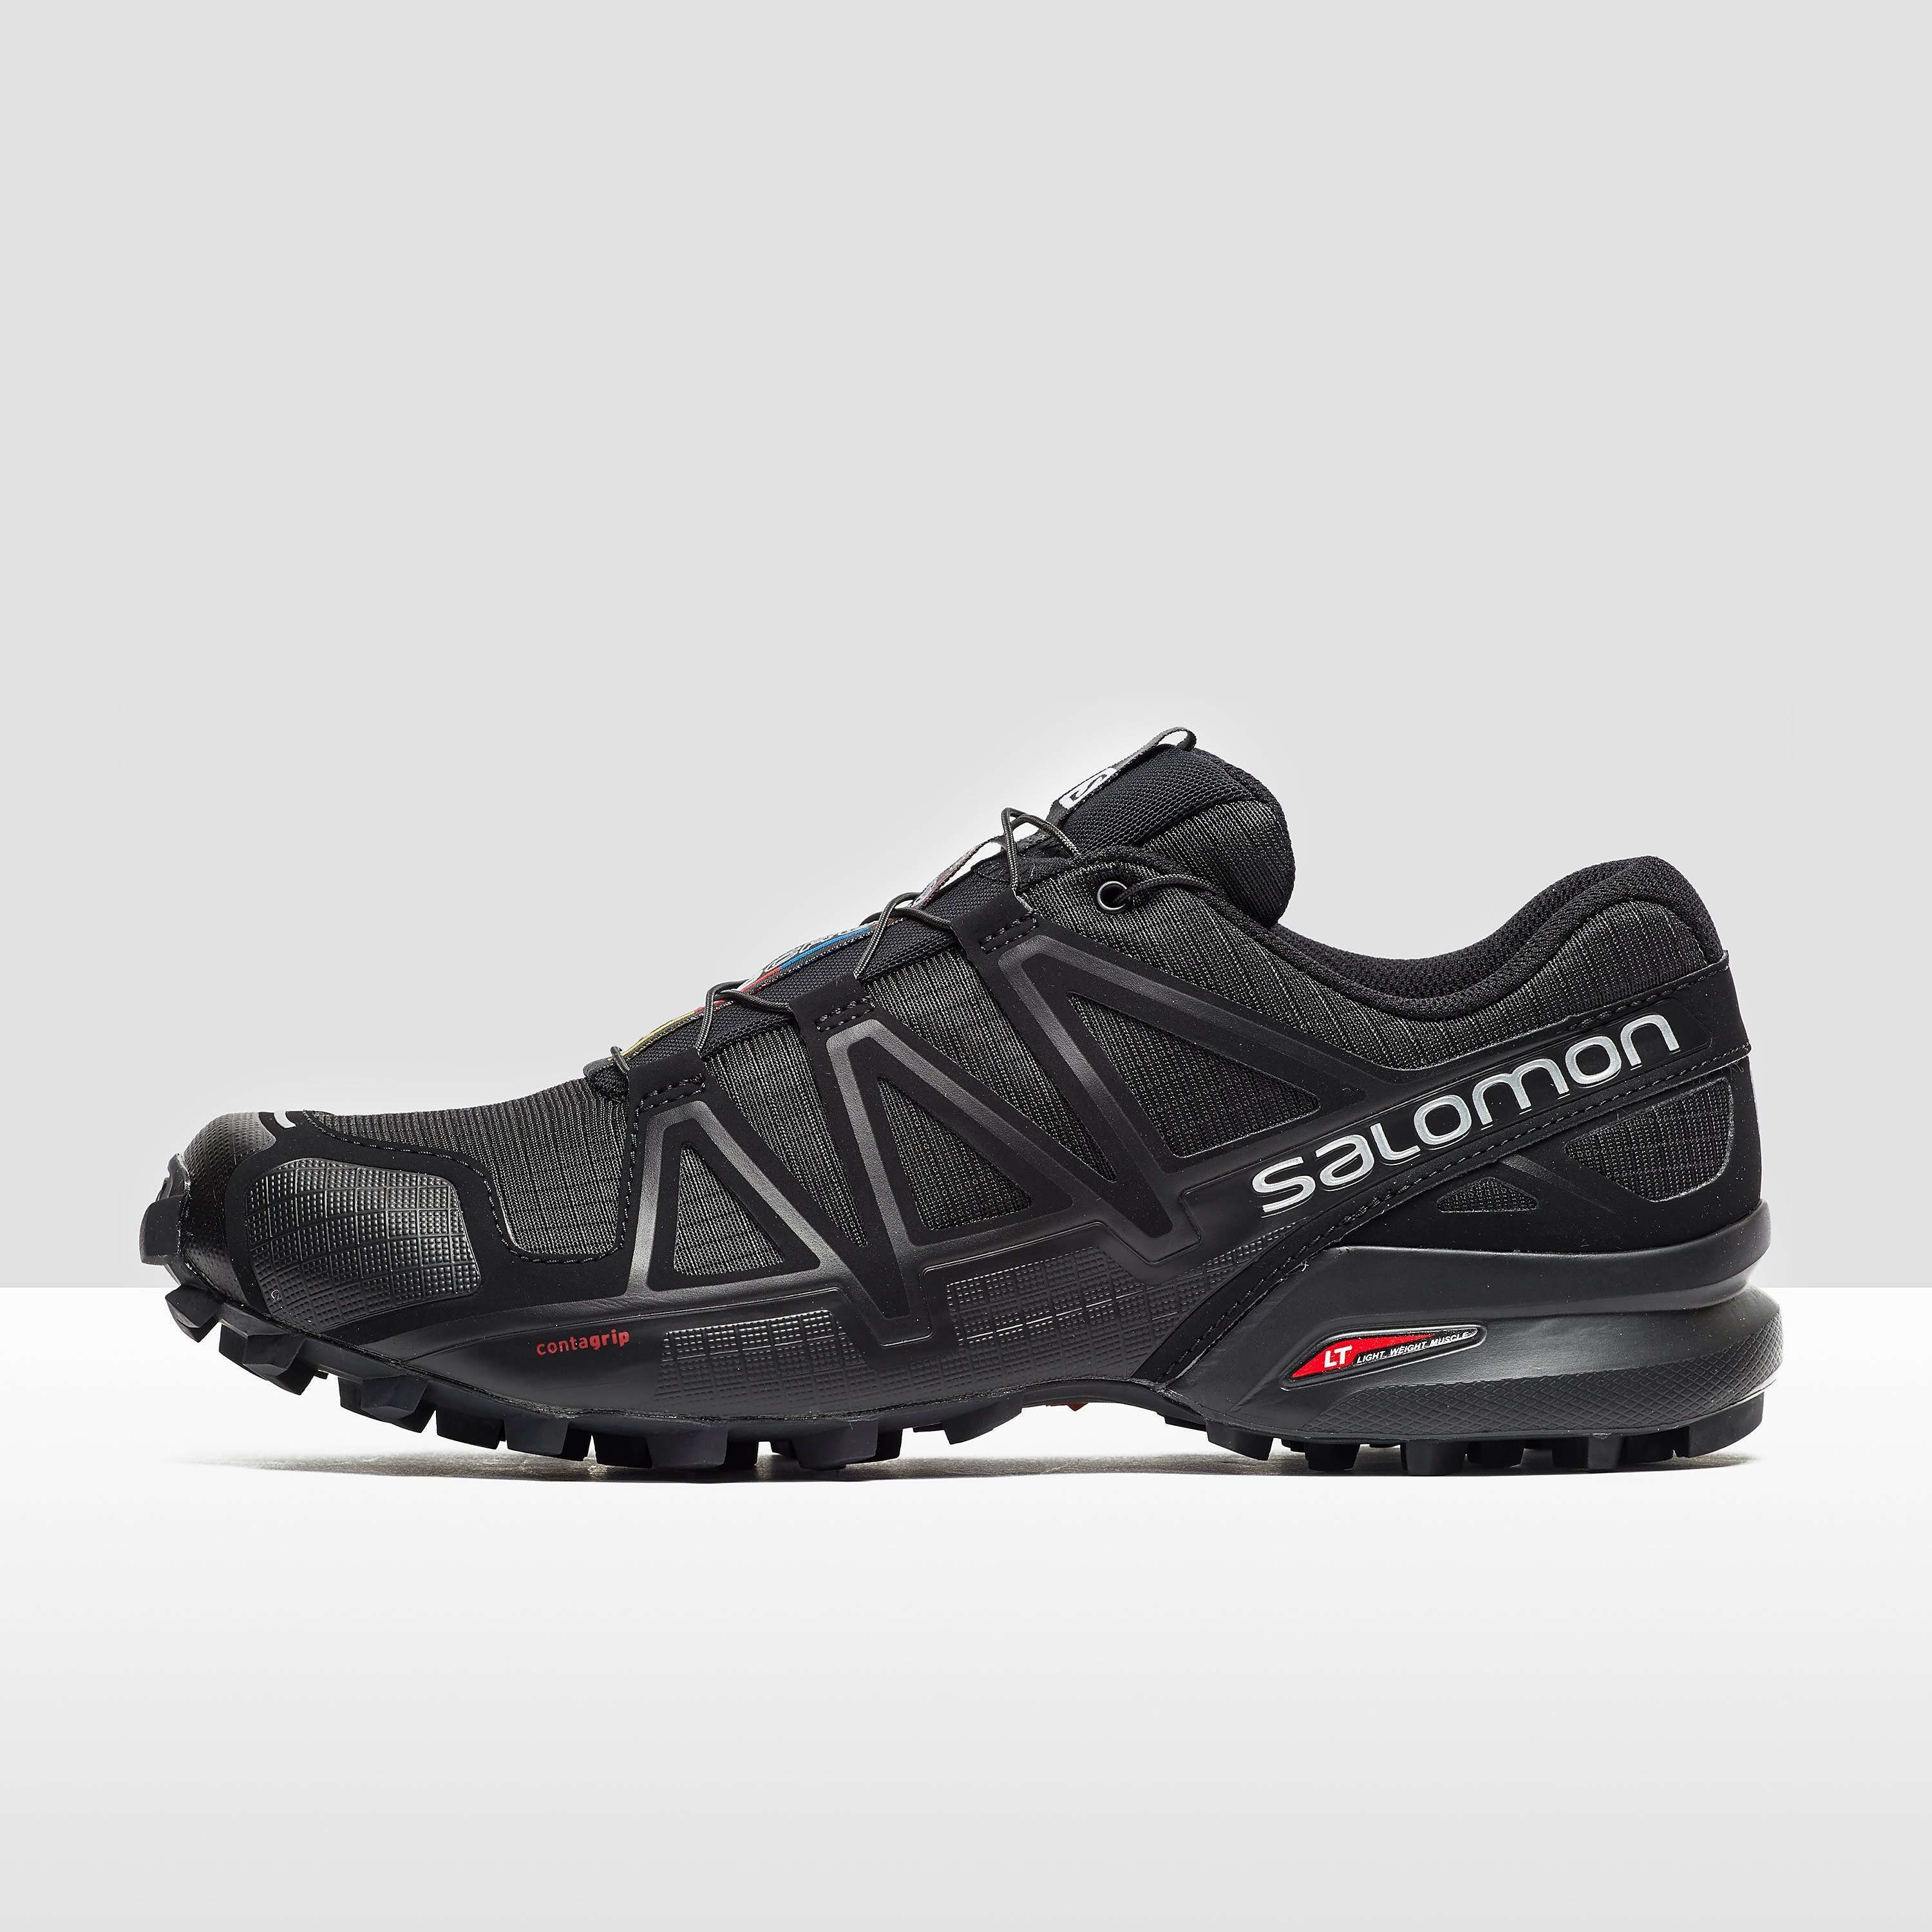 Salomon Speedcross 4 Men's Trail Running Shoes - find out more on our site. Find the widest range of sports equipment from top brands. #trailrunningshoes